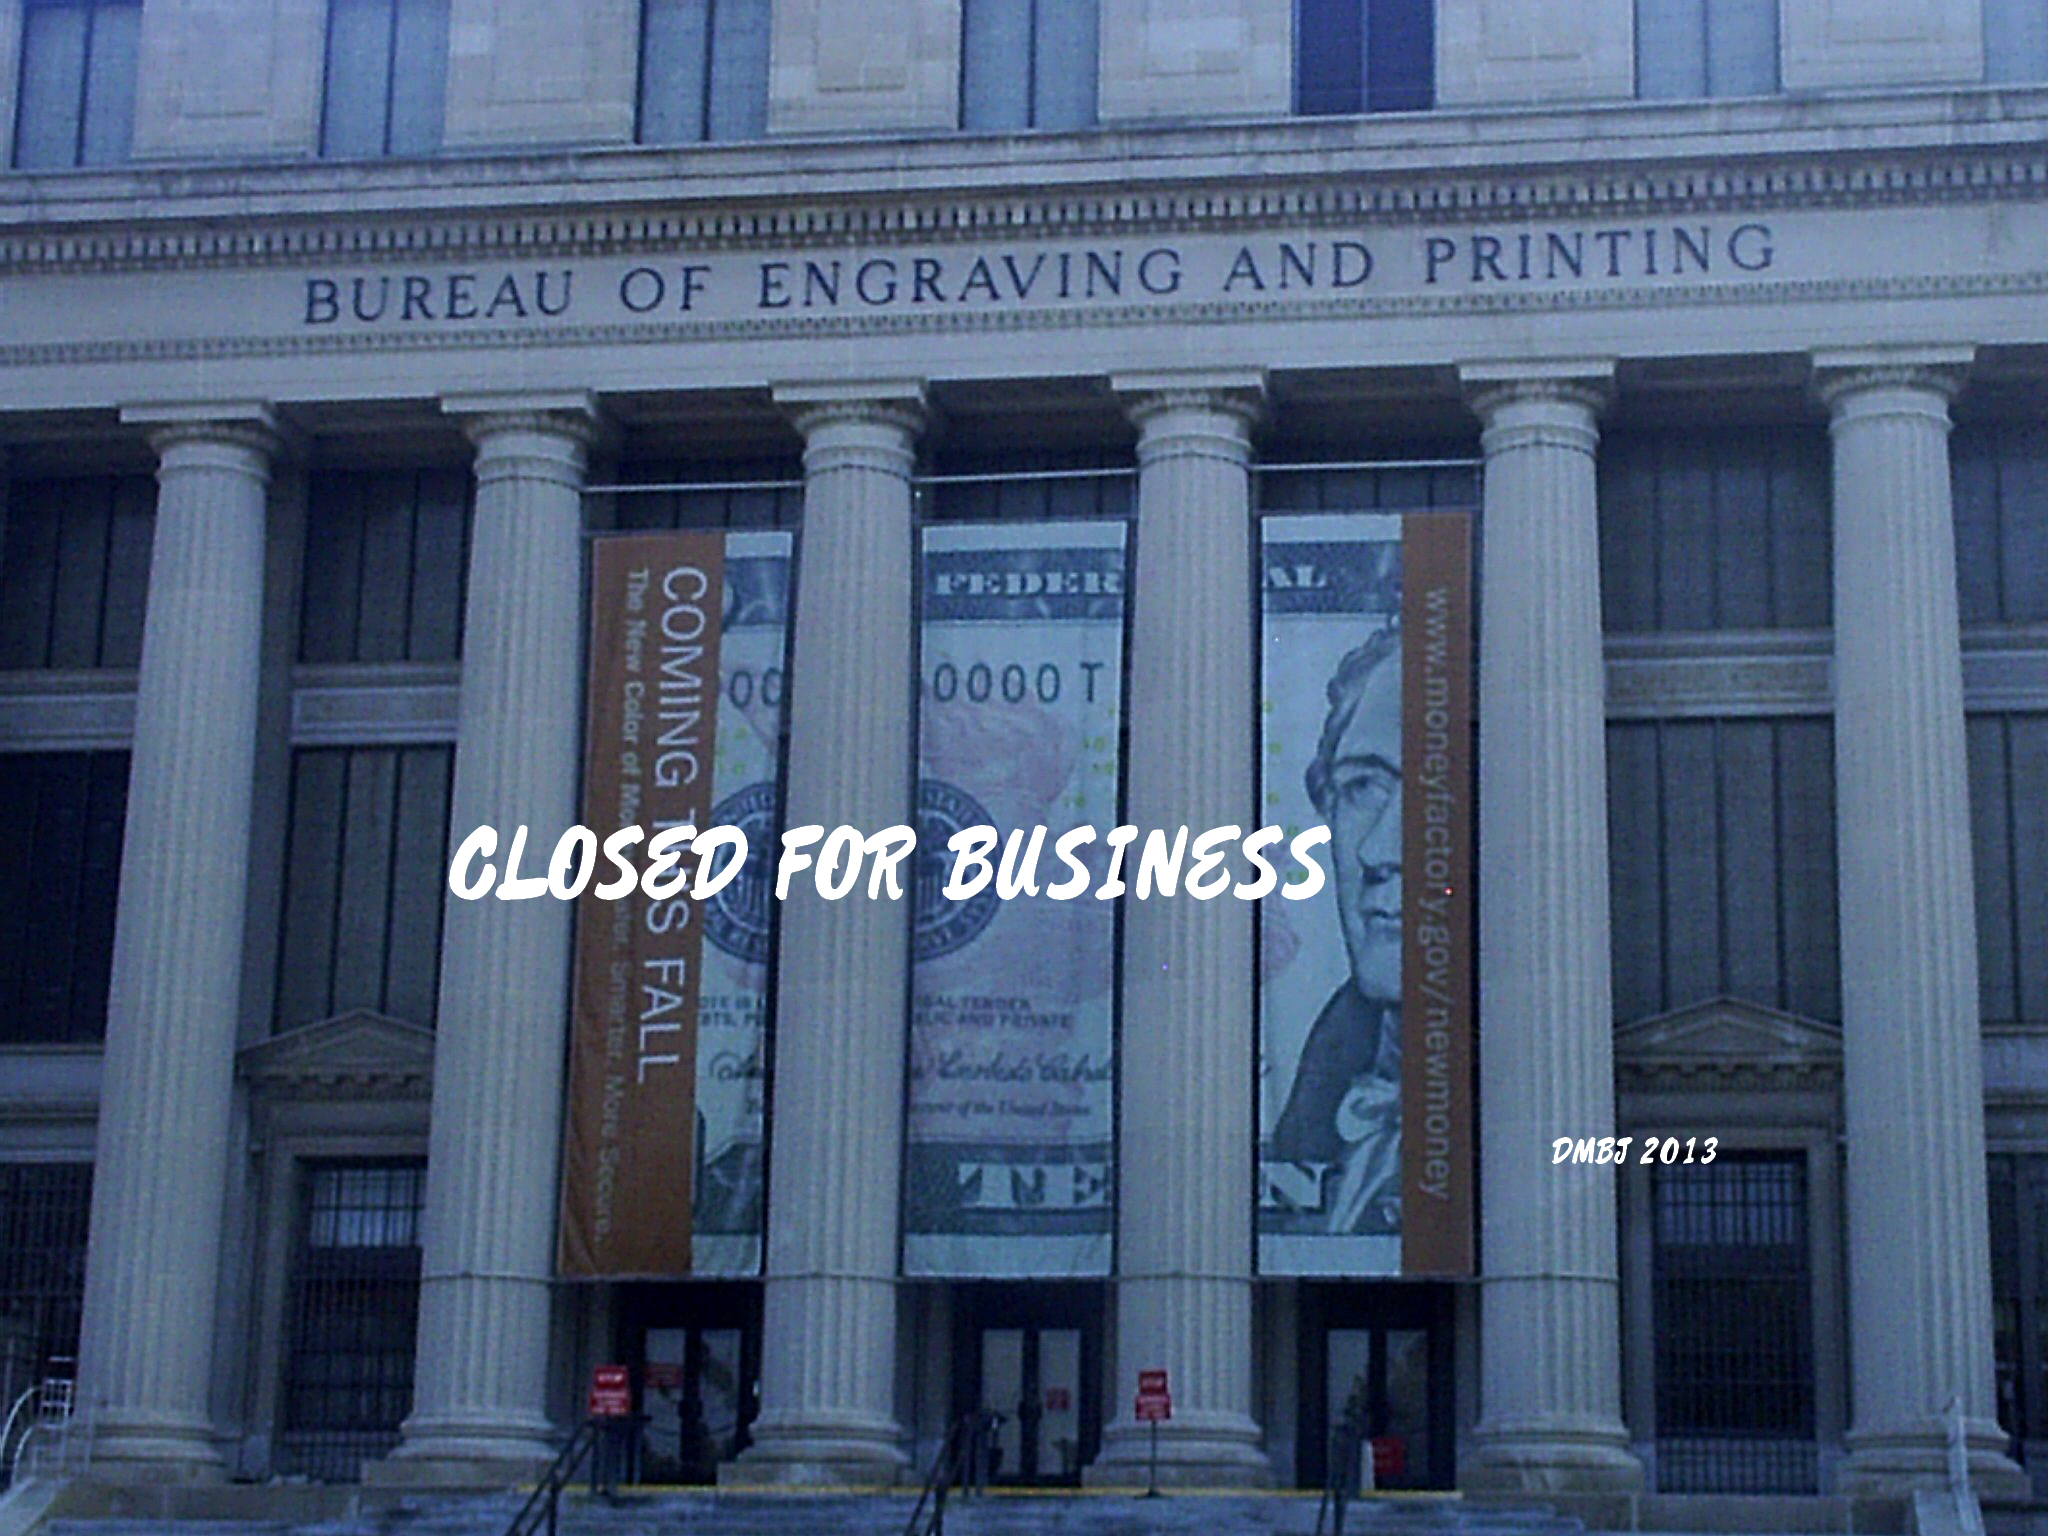 OUR GOVERNMENT PRINTING OFFICE CLOSED FOR BUSINESS (PHOTO BY PASTOR DAVIS)